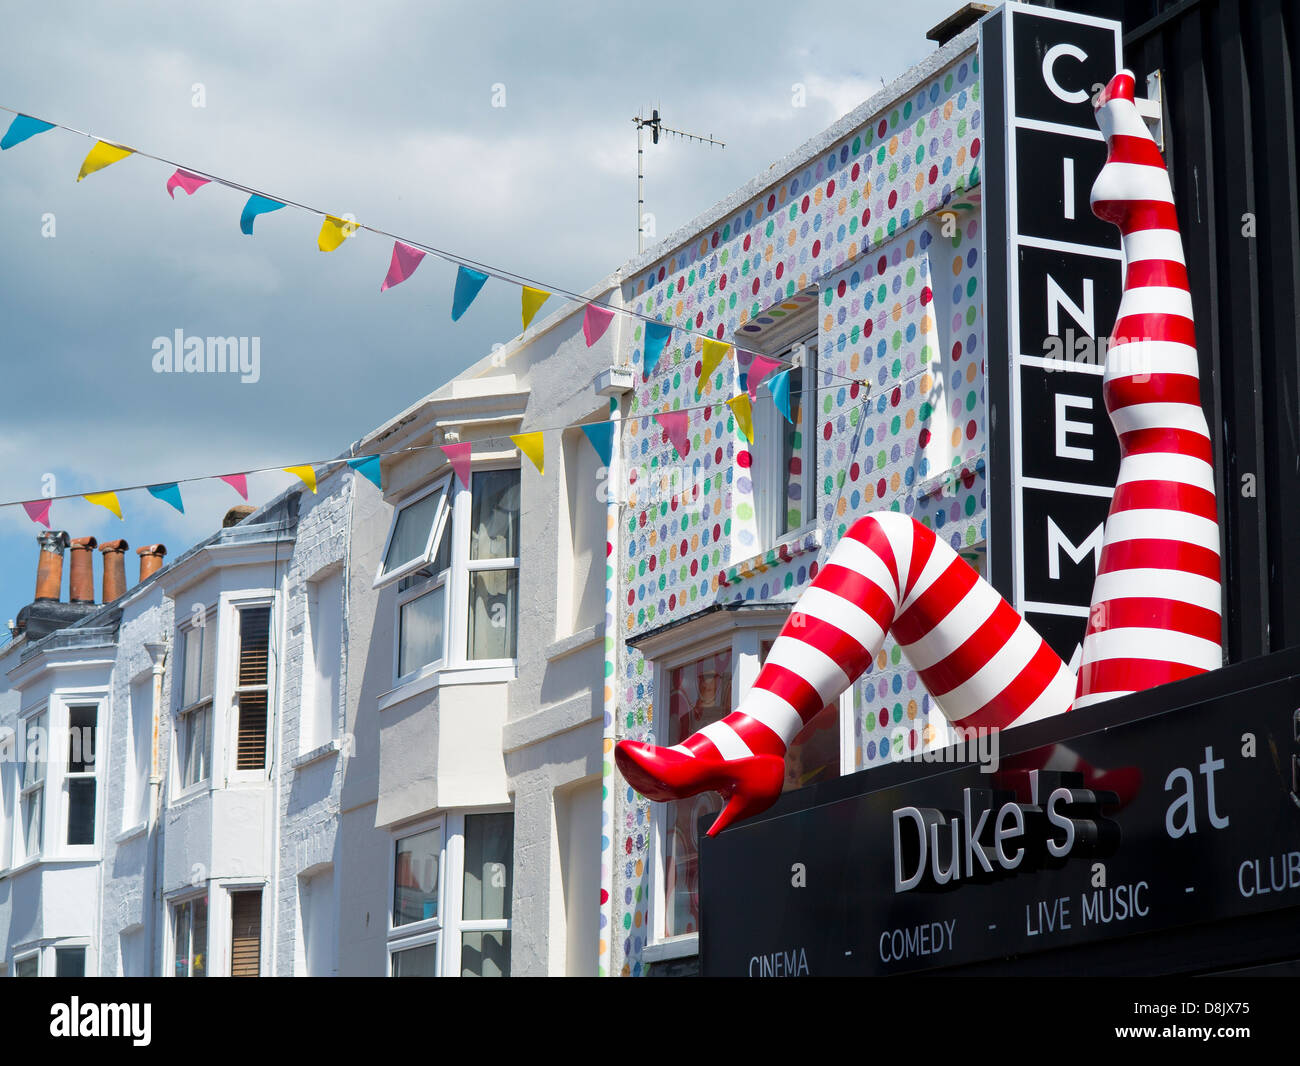 Brighton's Dukes at Komedia cinema owned by the Picturehouse cinema chain - decorative legs of can-can dancer - Stock Image